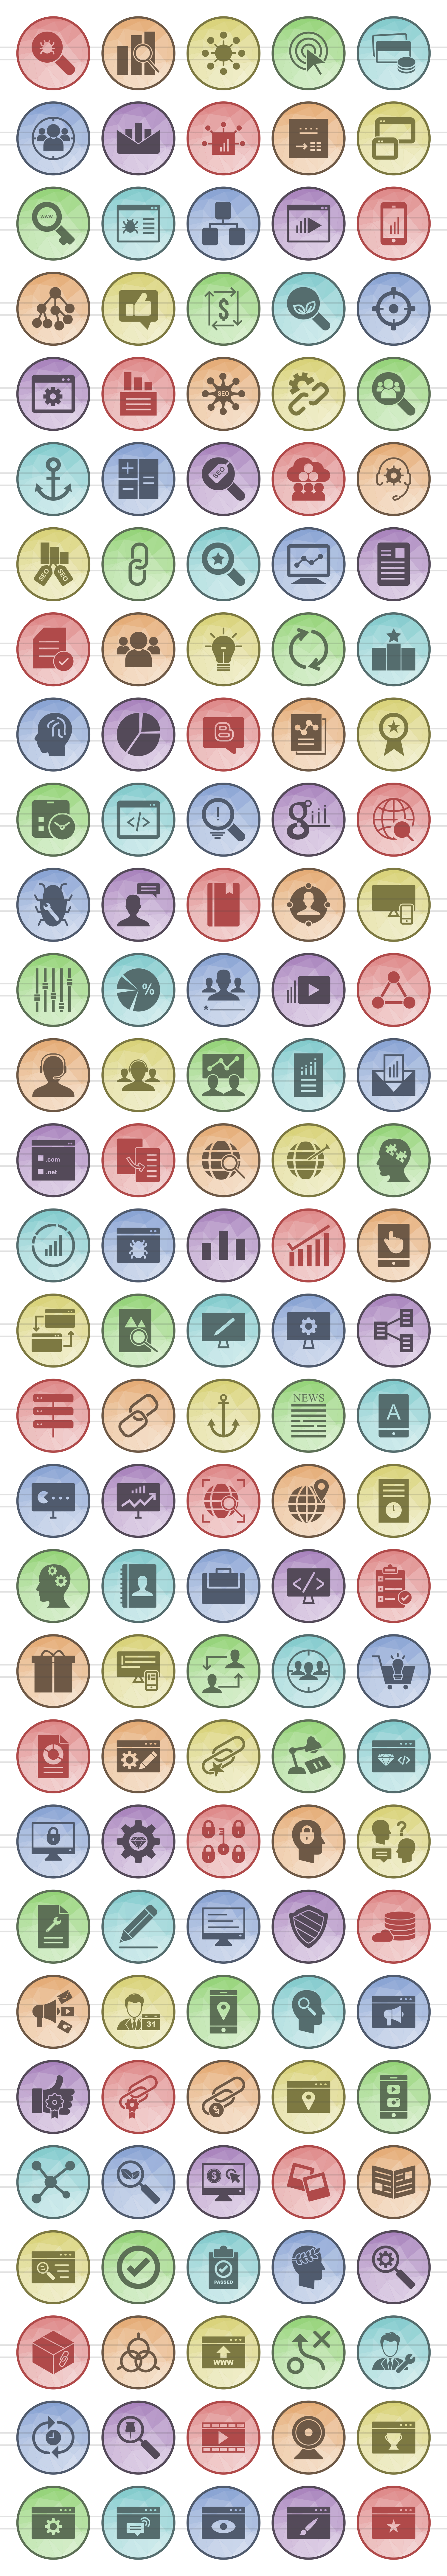 150 IT Services Filled Low Poly Icons example image 2